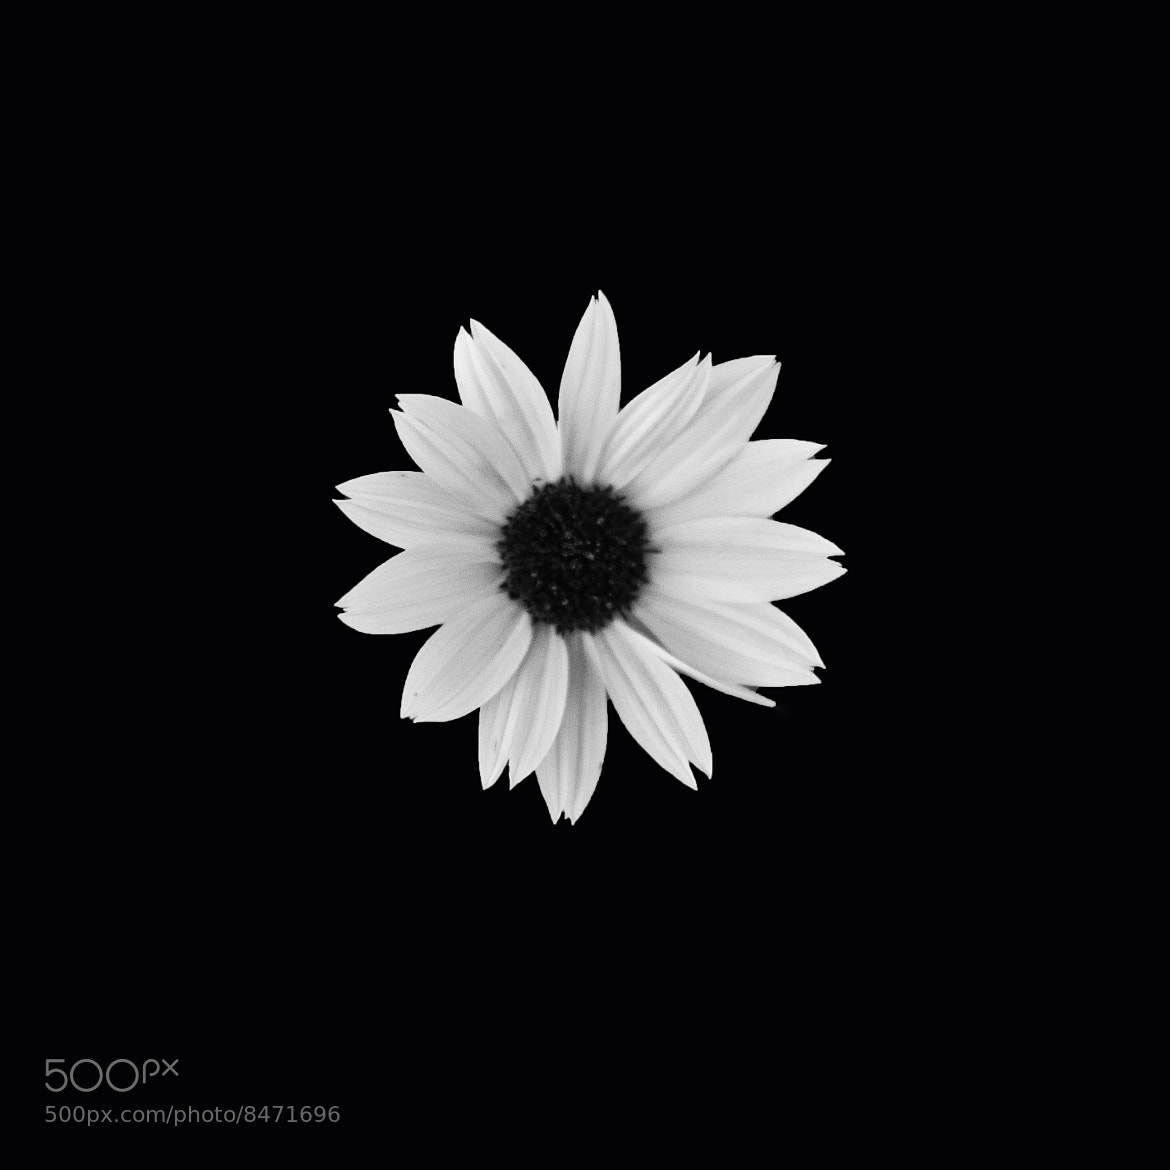 Photograph Black/White Flower by Jonathan F Miller on 500px